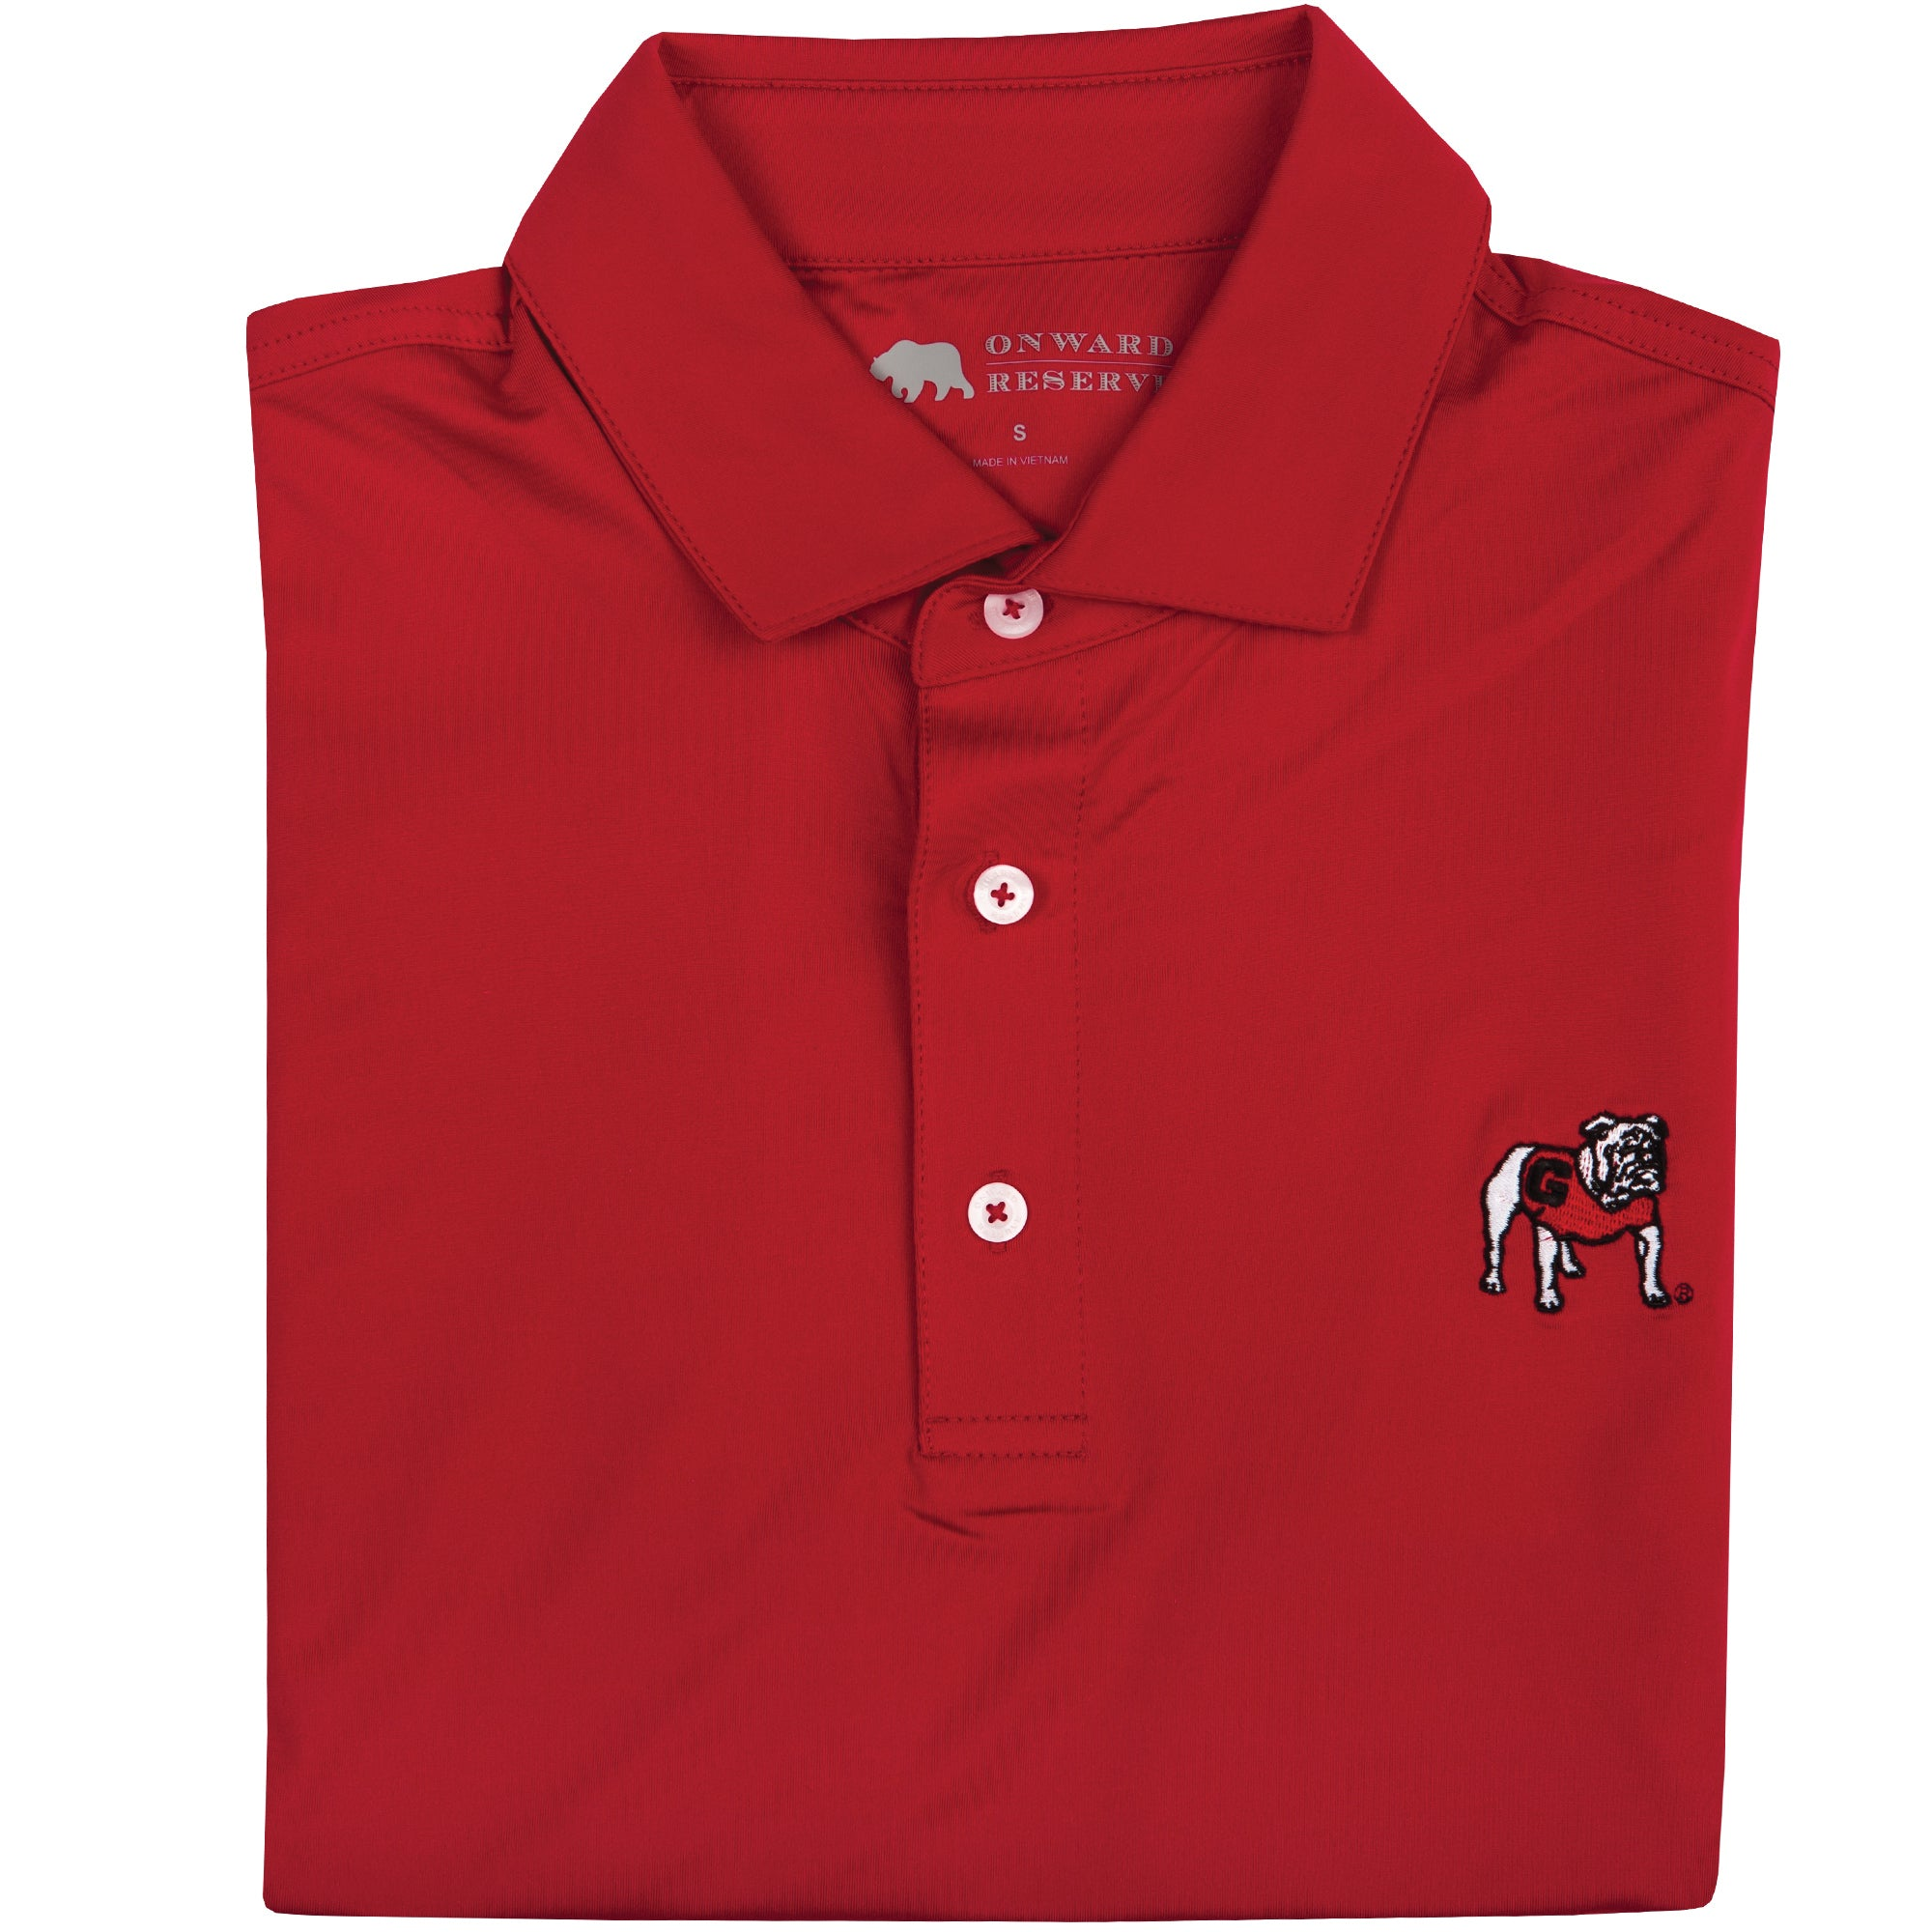 Solid Standing Bulldog Performance Polo